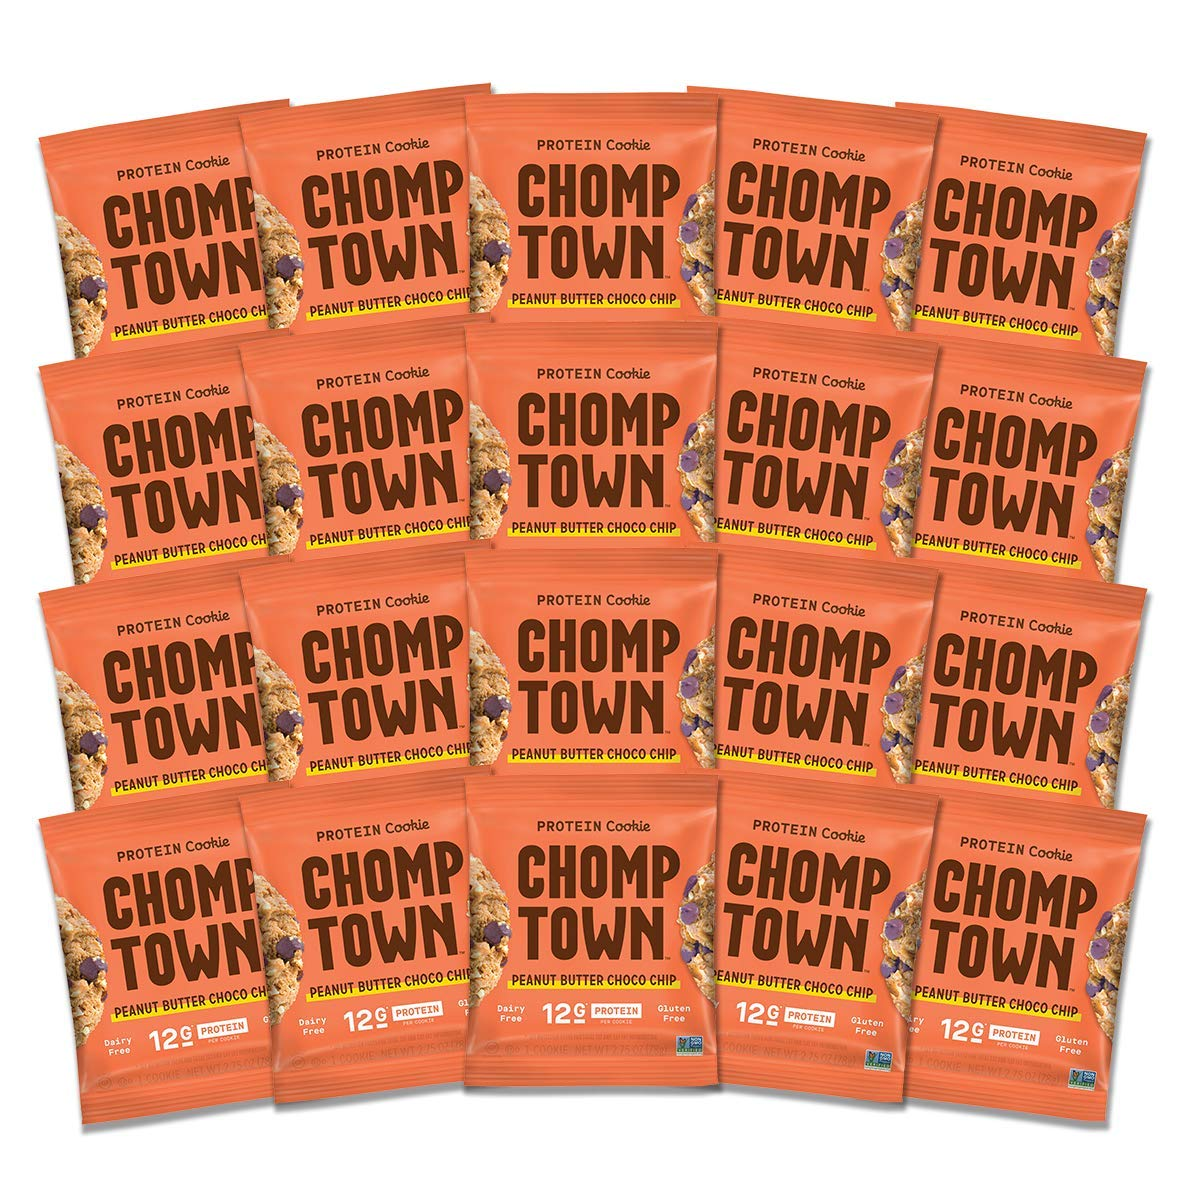 Chomptown | Peanut Butter Chocolate Chip | High-Protein Cookie | 12g Protein | Gluten-Free | Dairy-Free | Non-GMO | Fair Trade | 2.75 oz (Pack of 20) by Chomptown (Image #1)